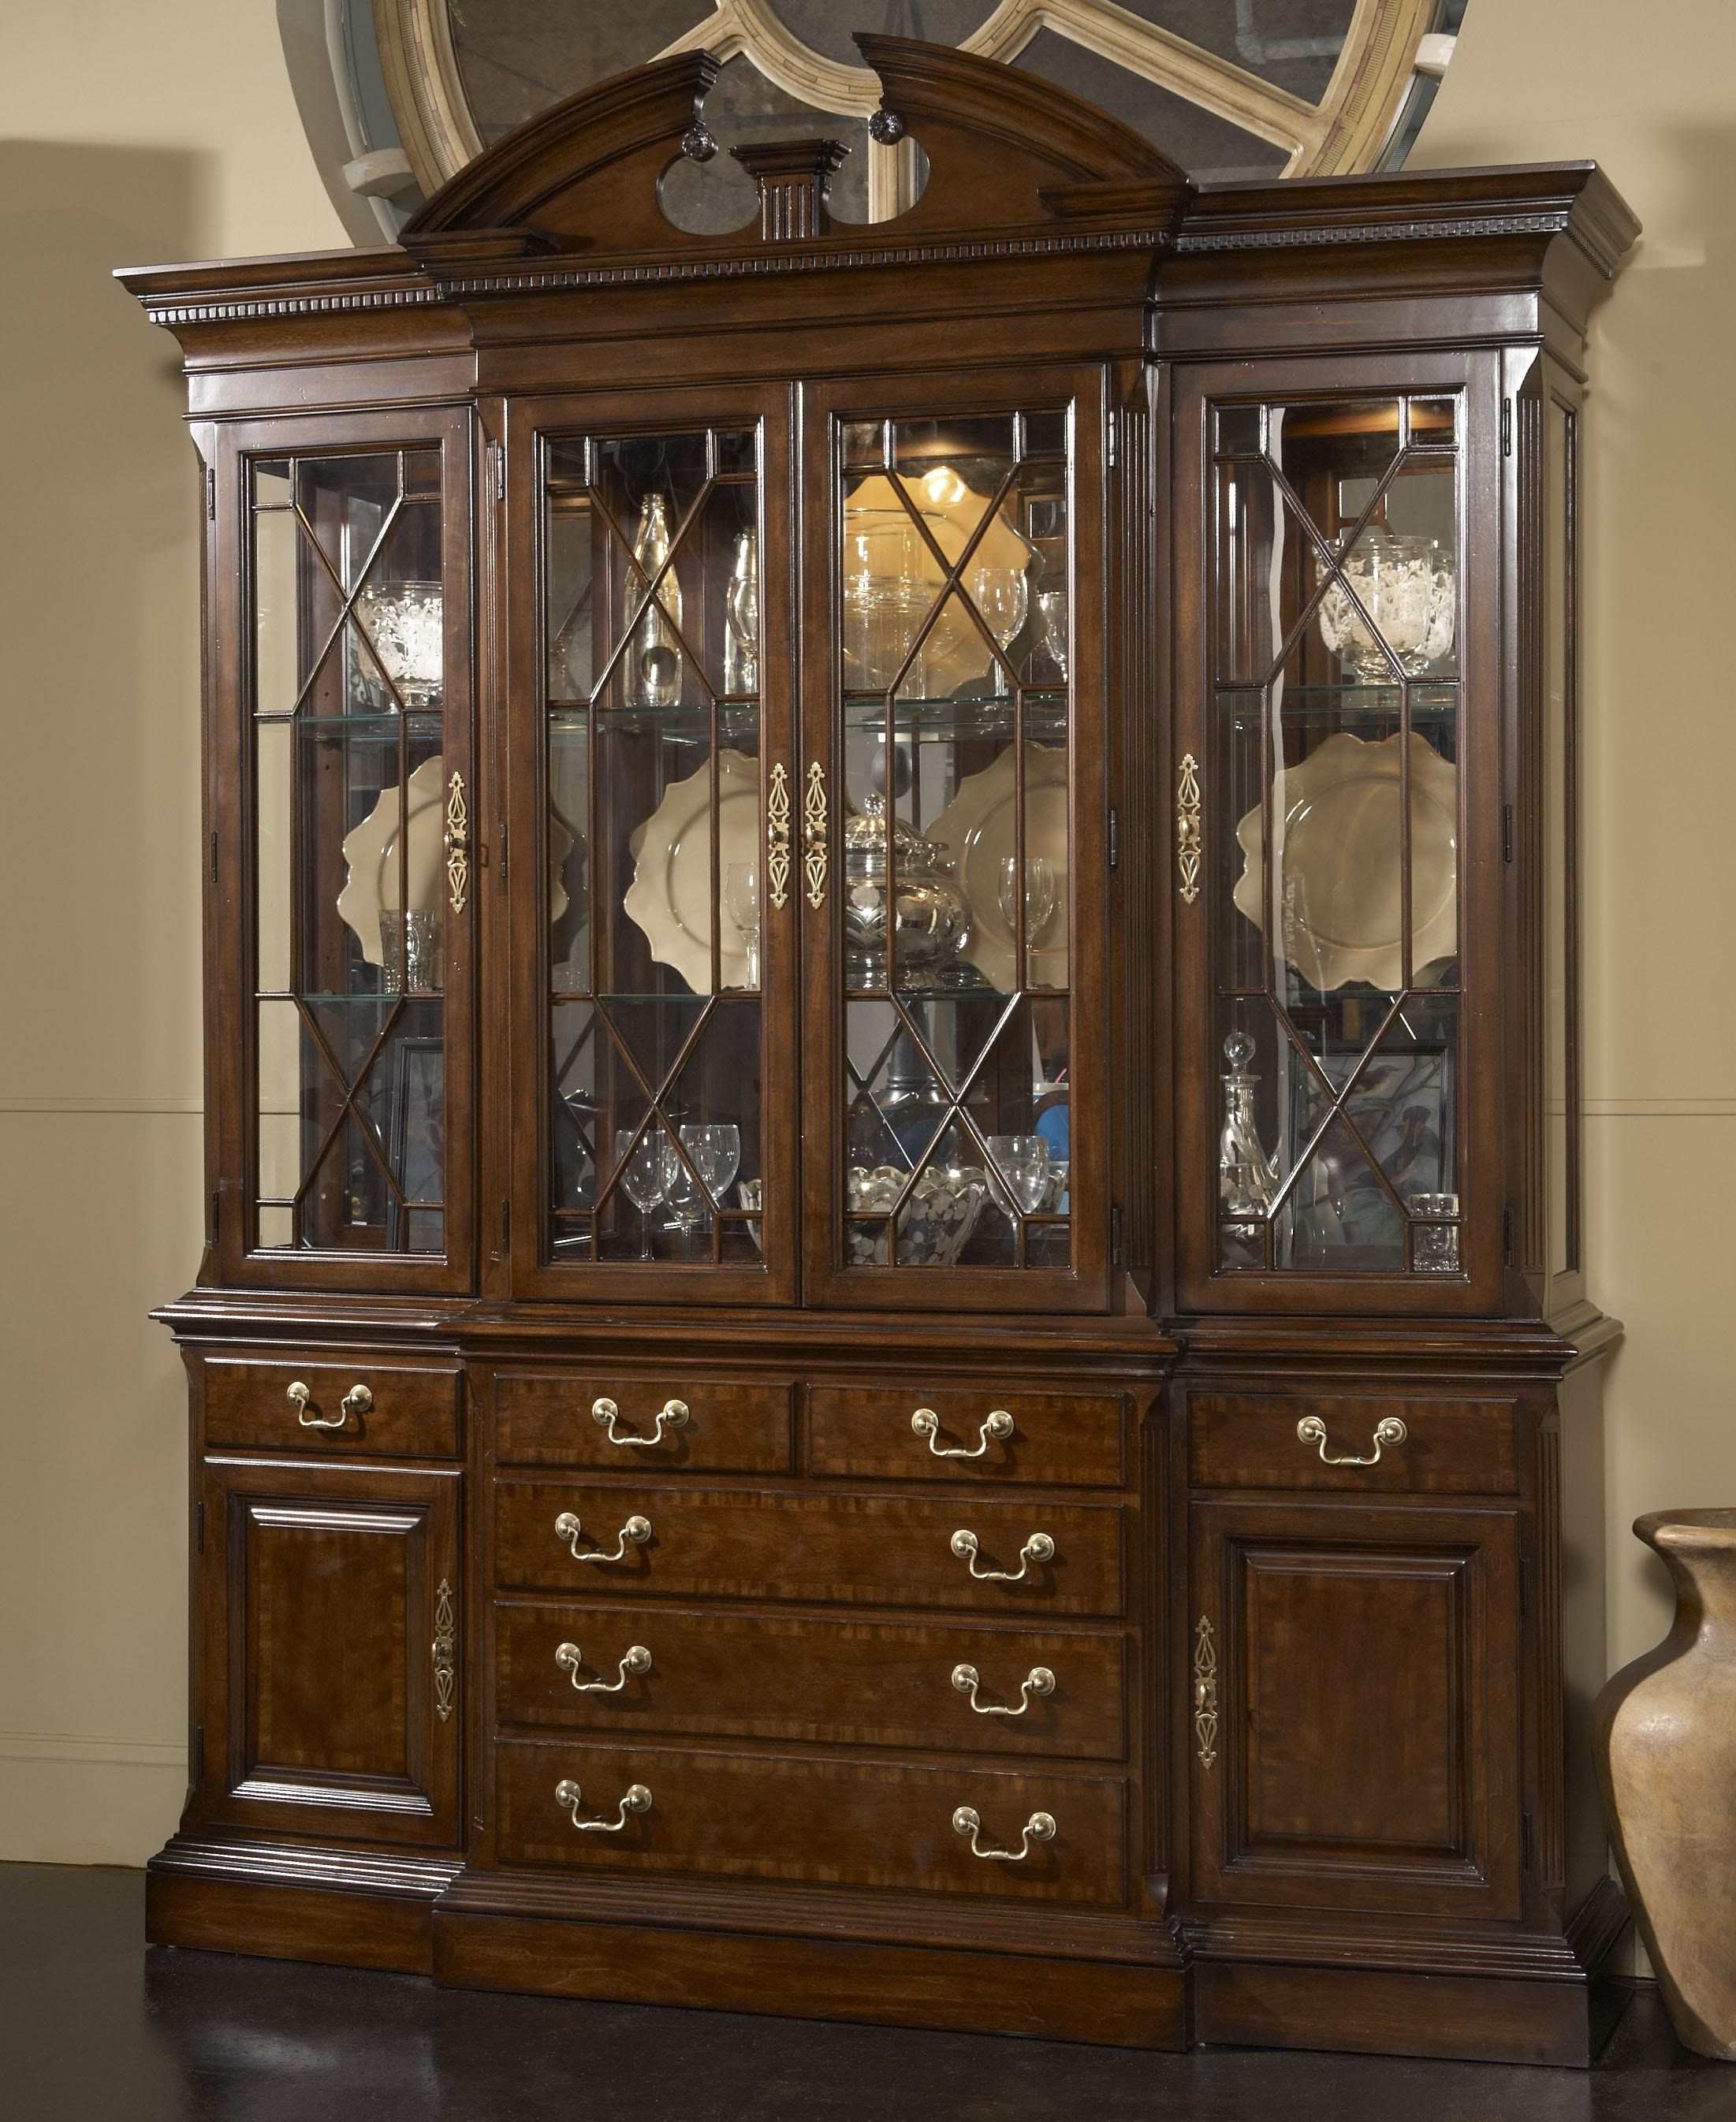 Fine Furniture Design American Cherry Andover Breakfront China Cabinet With  Mirrored Back Panel